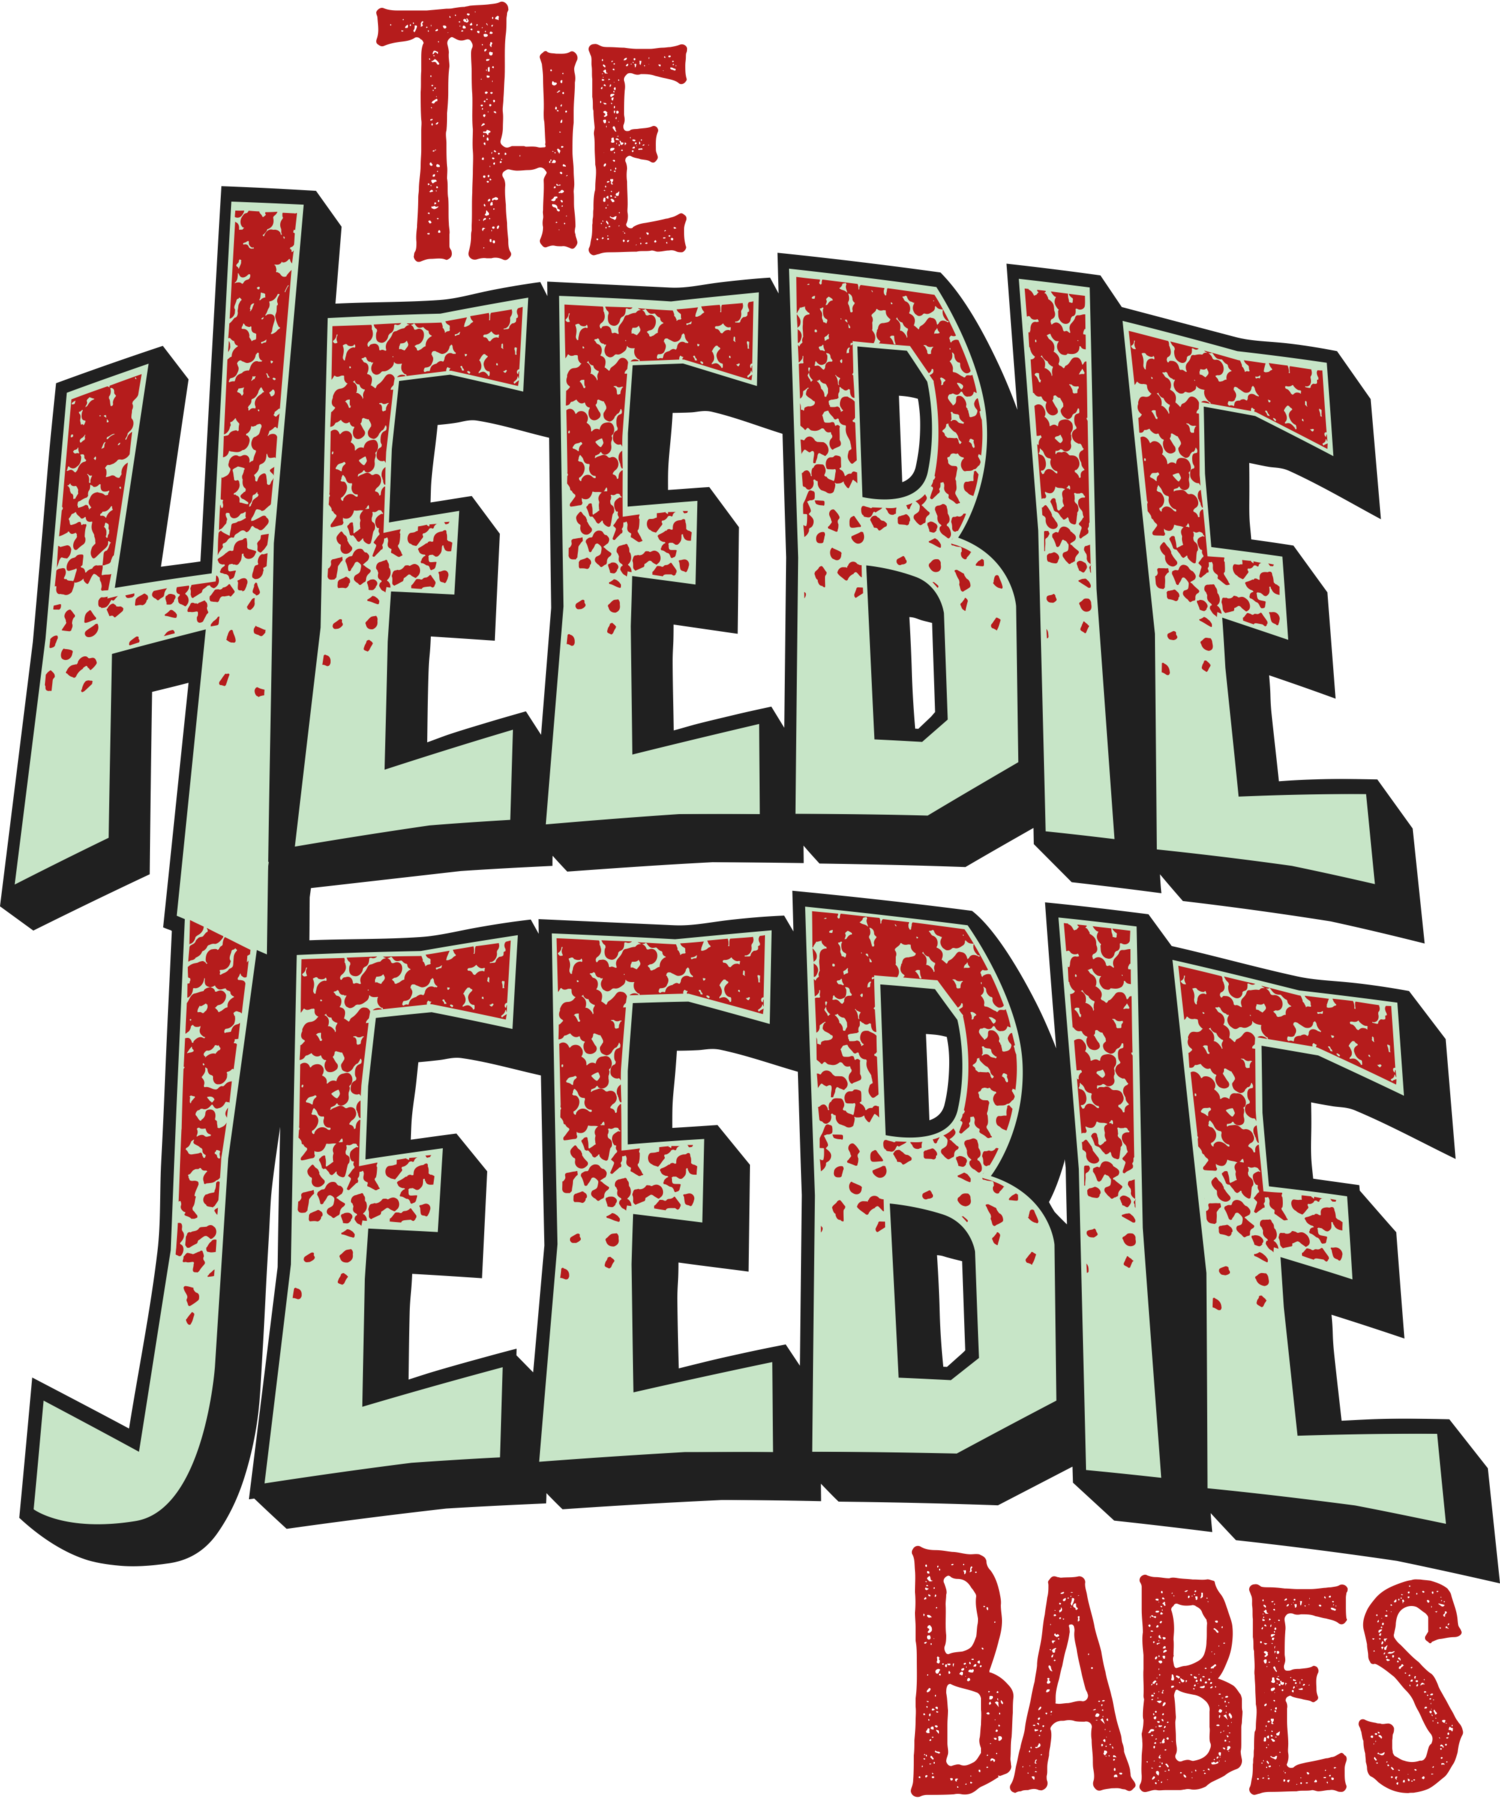 The Heebie Jeebie Babes Podcast